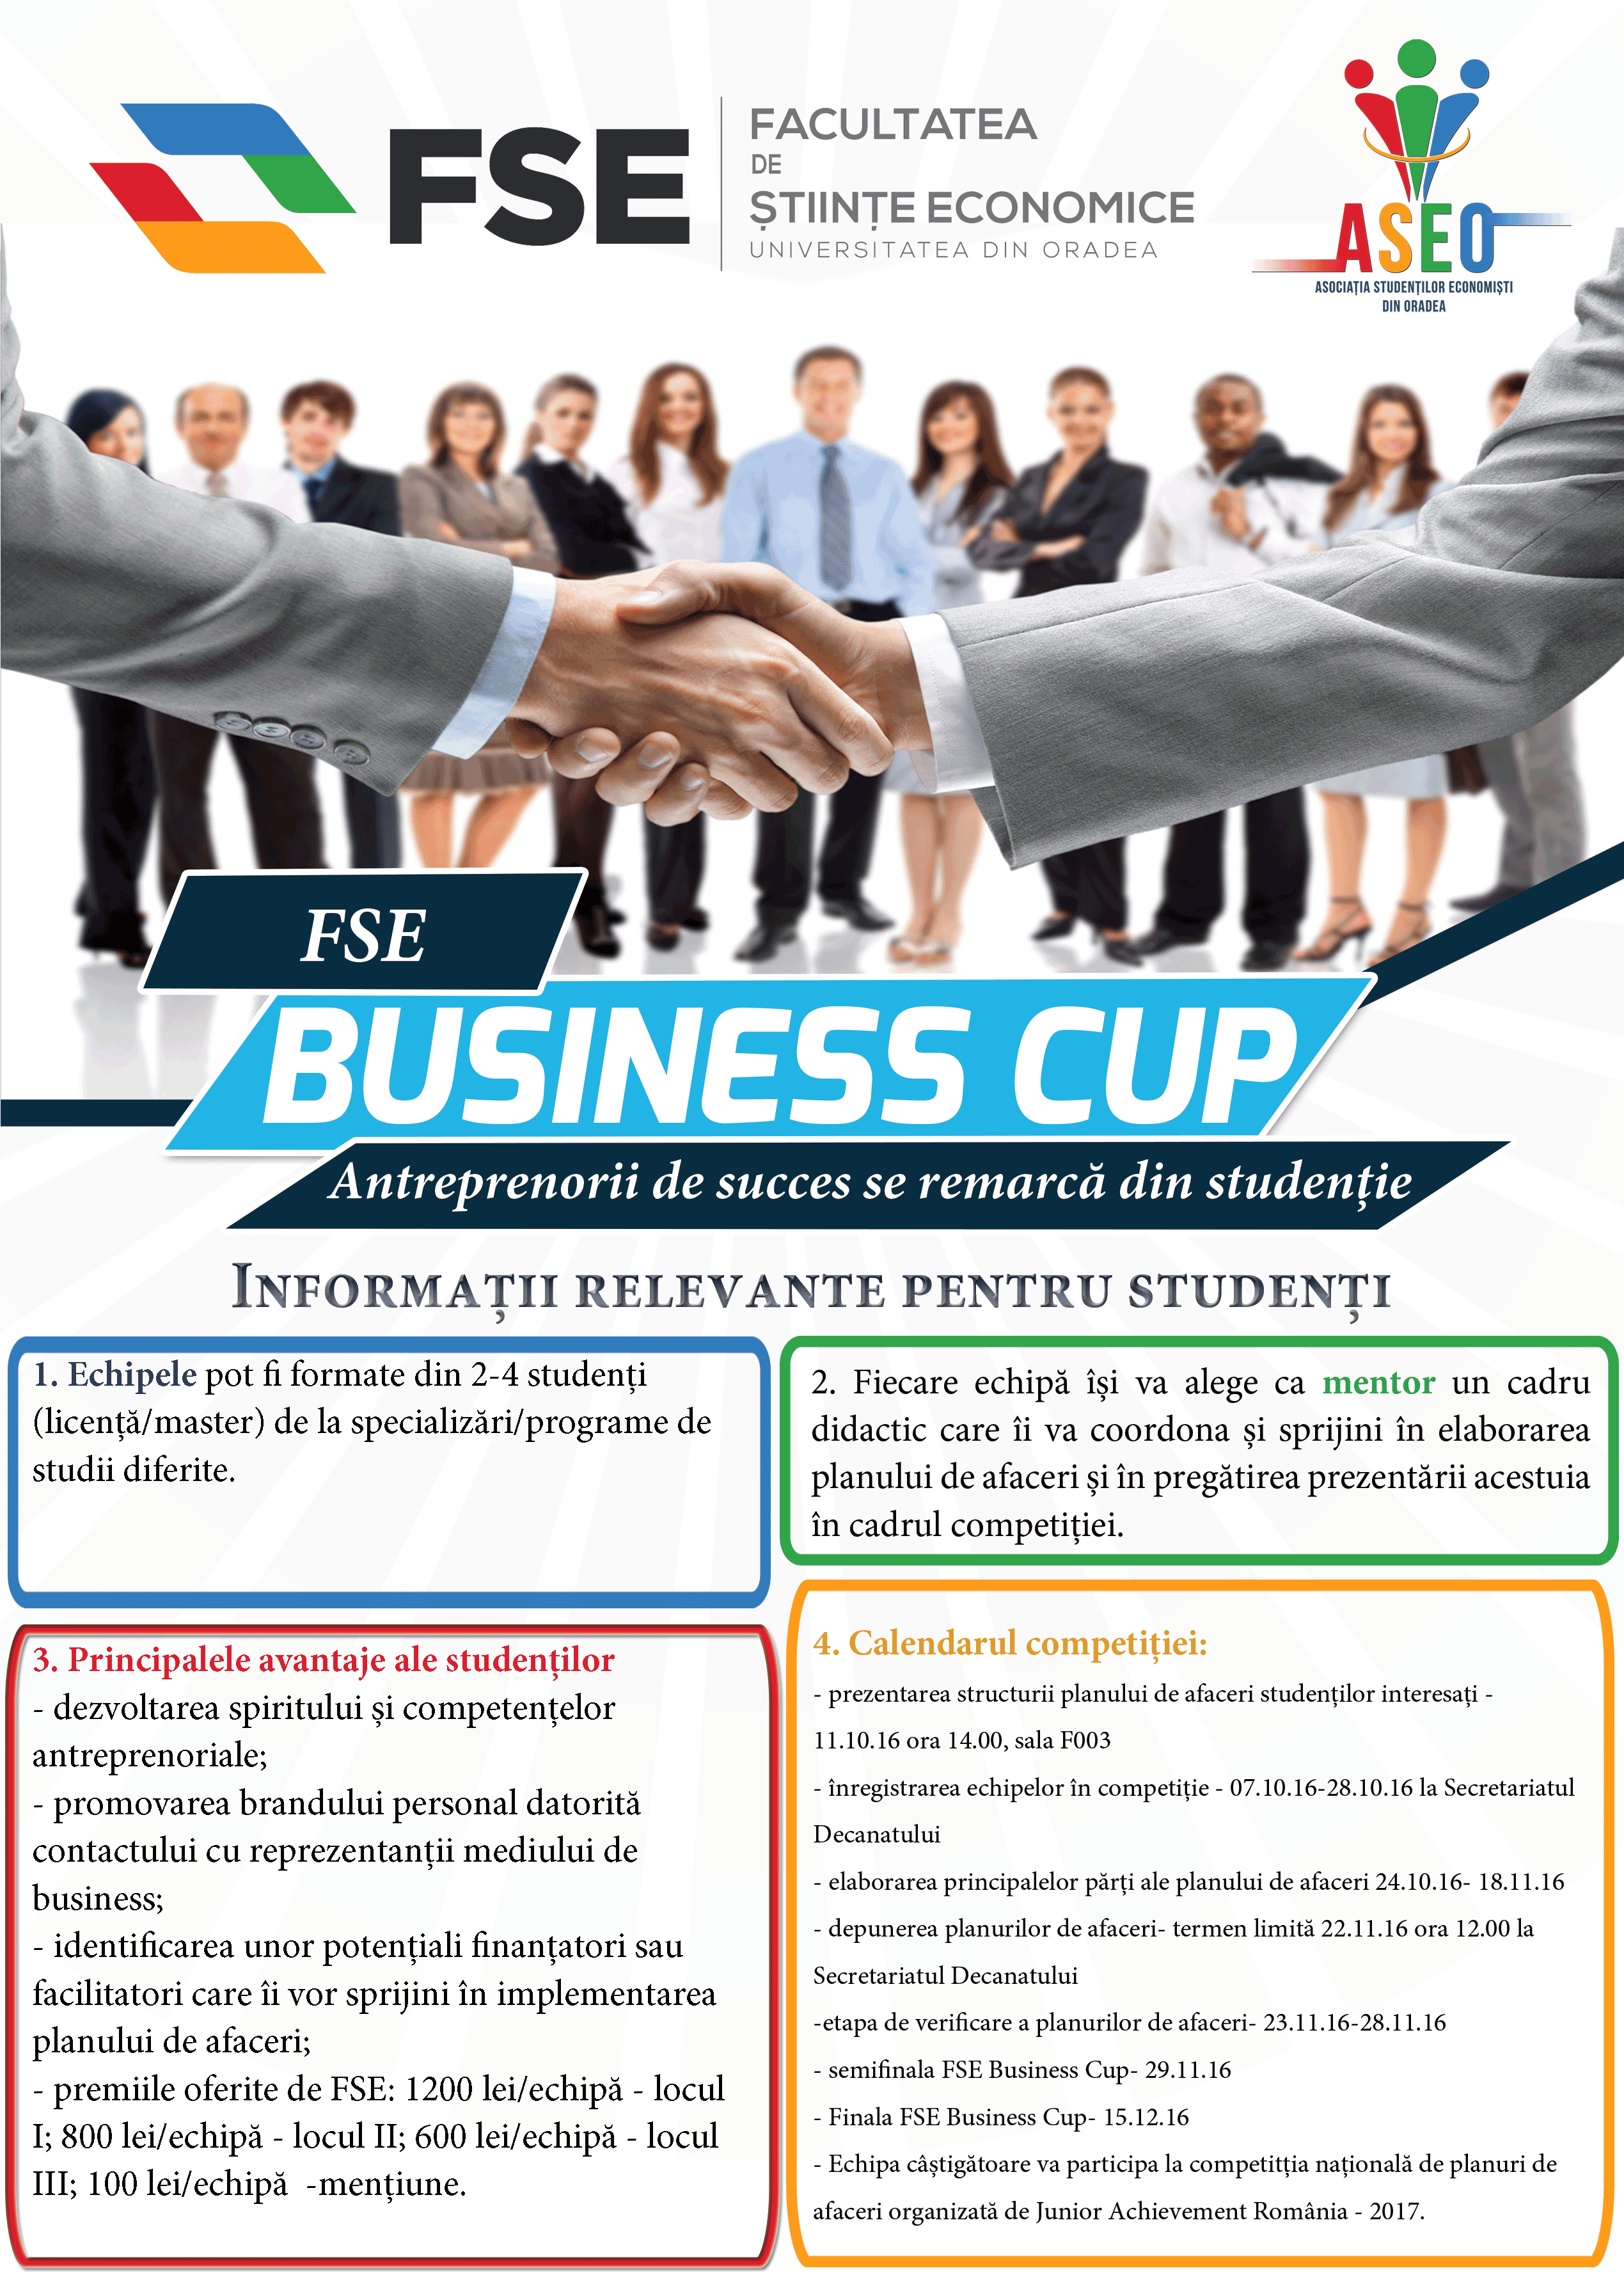 fse-business-cup-anunt-competitie-2016